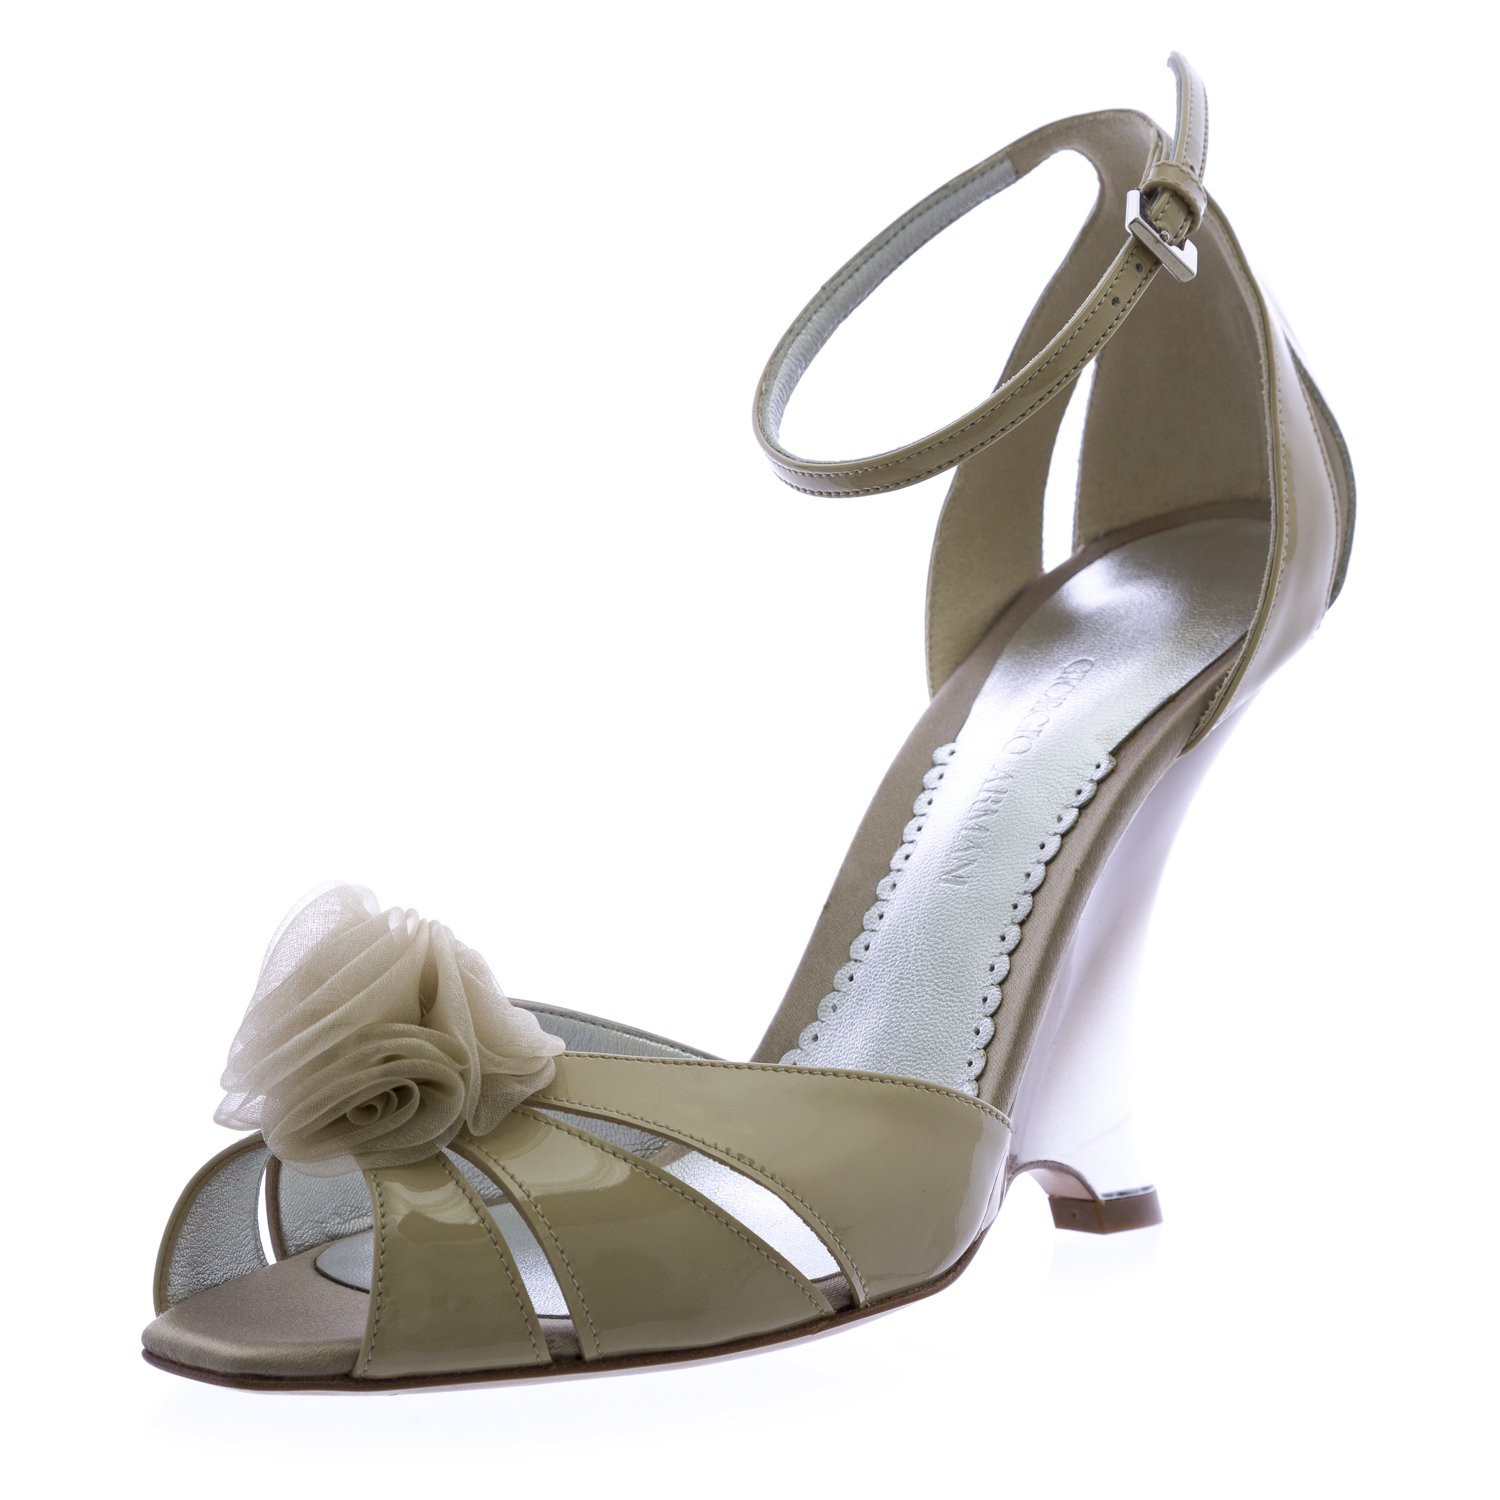 Giorgio Armani Women's Patent Leather Stiletto Wedges 7 Ecru